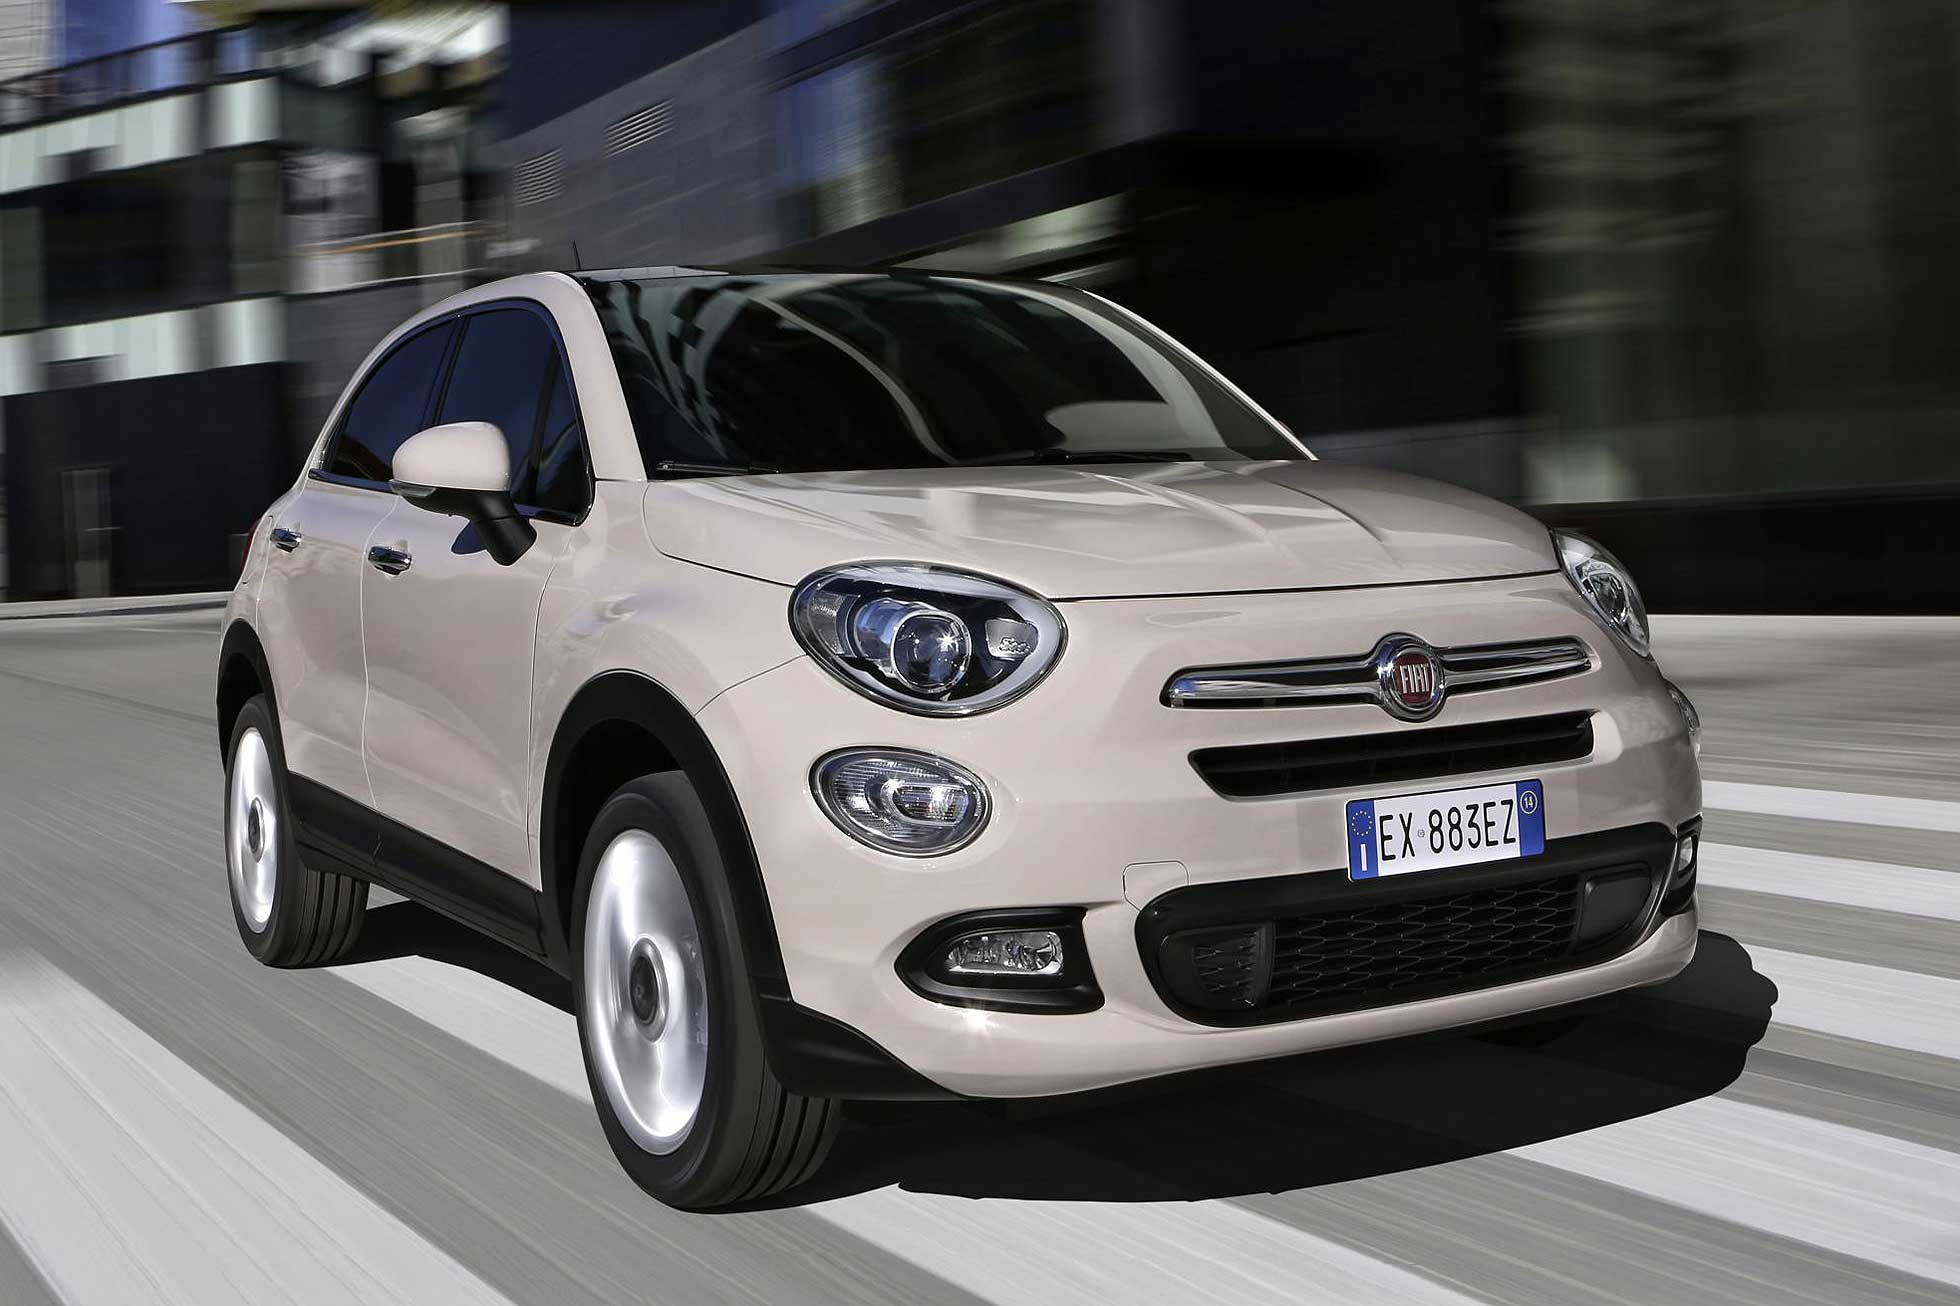 fiat 500x crossover priced from 14 595 in uk motoring research. Black Bedroom Furniture Sets. Home Design Ideas